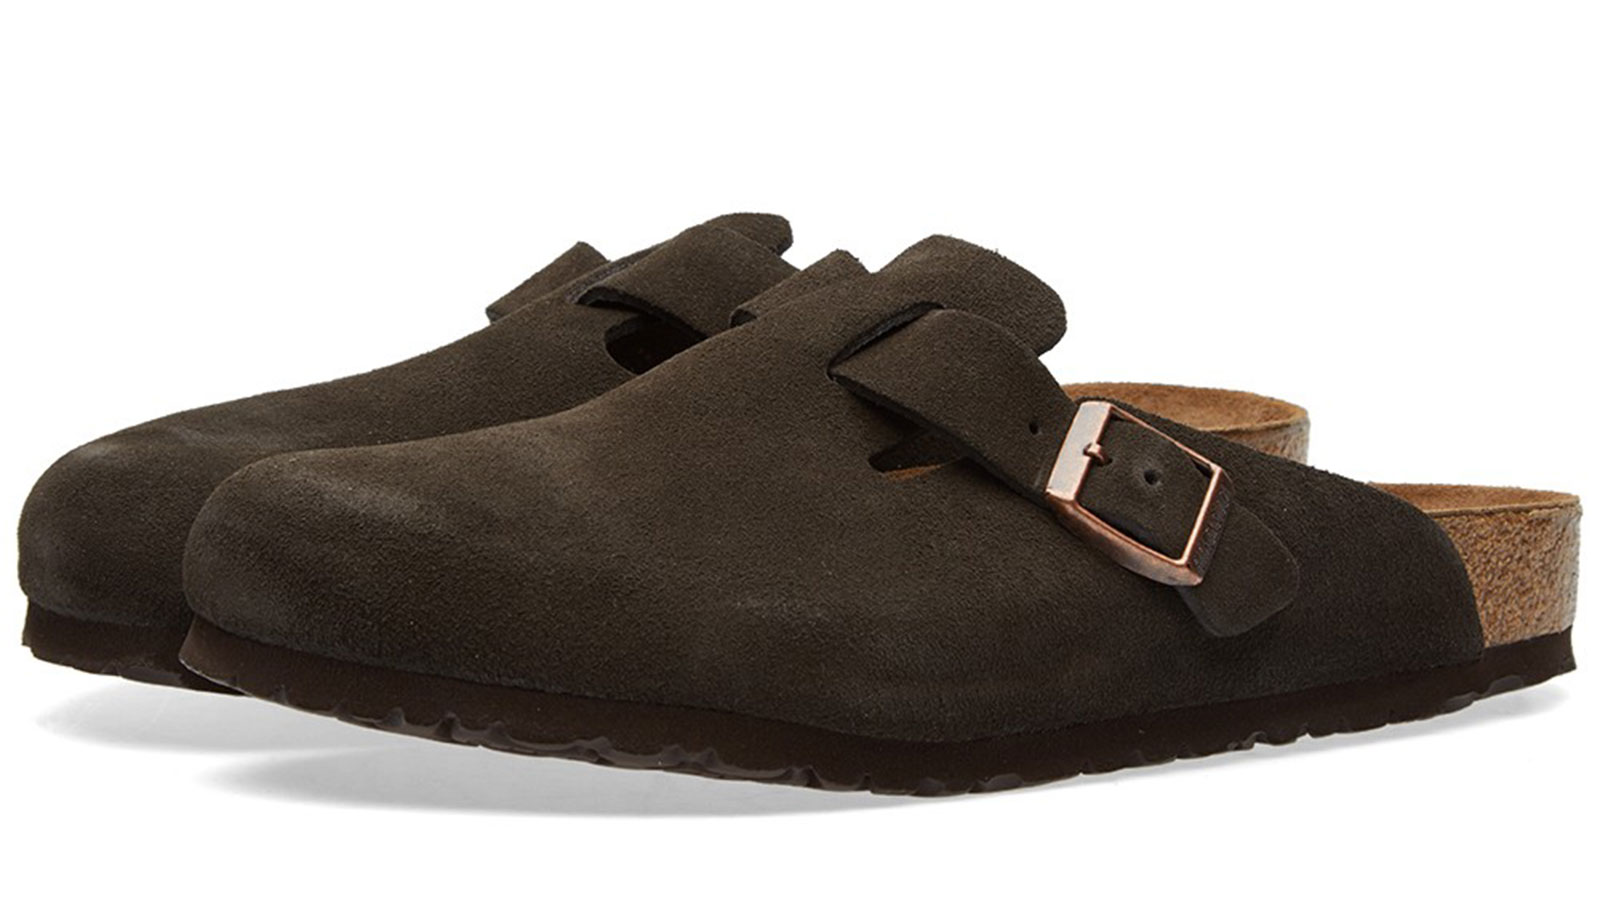 Birkenstock Boston best sandals for men